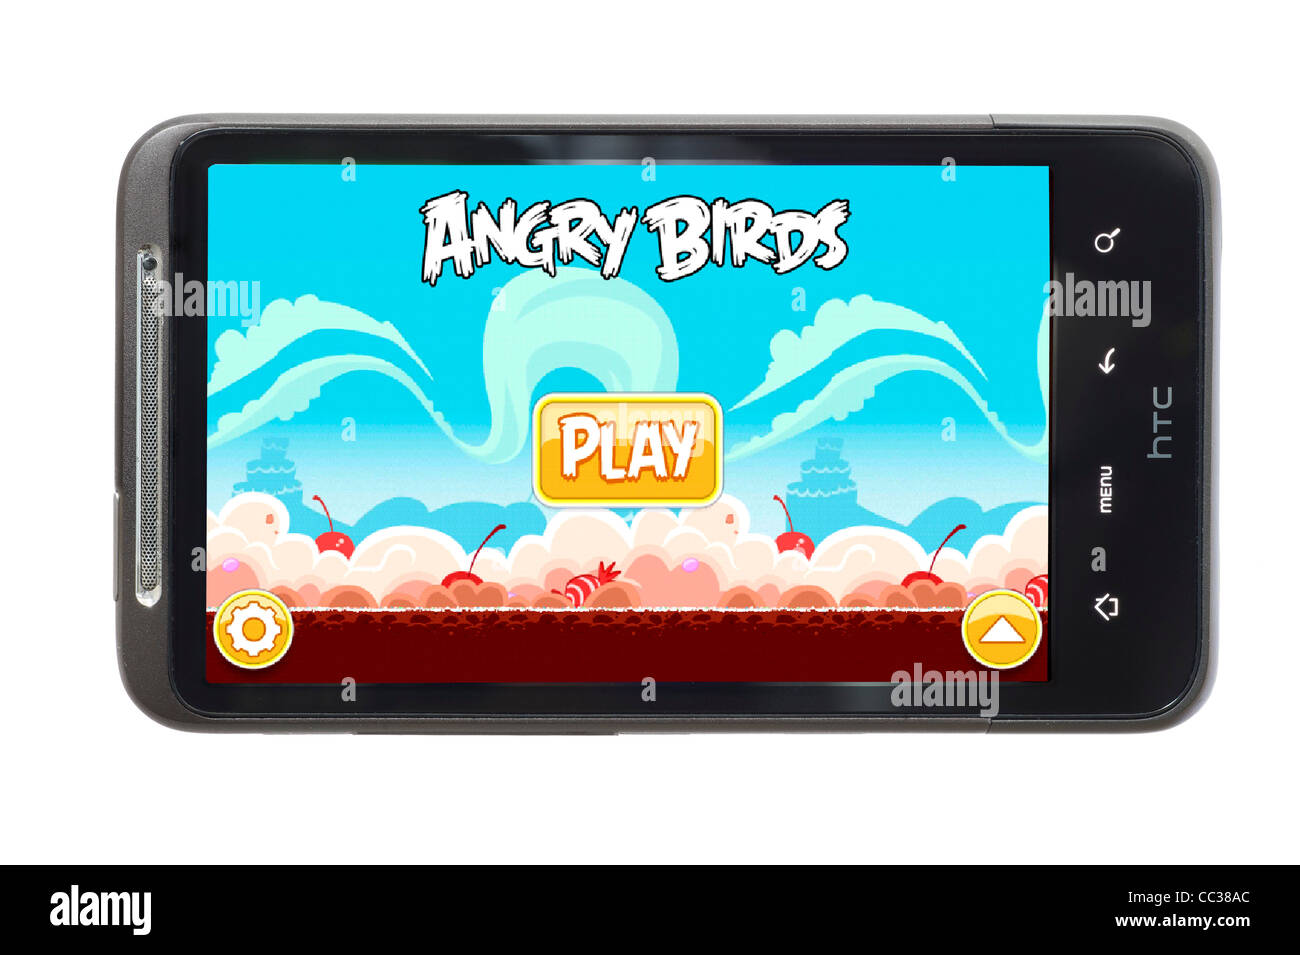 The hugely popular Angry Birds game on an HTC smartphone - Stock Image